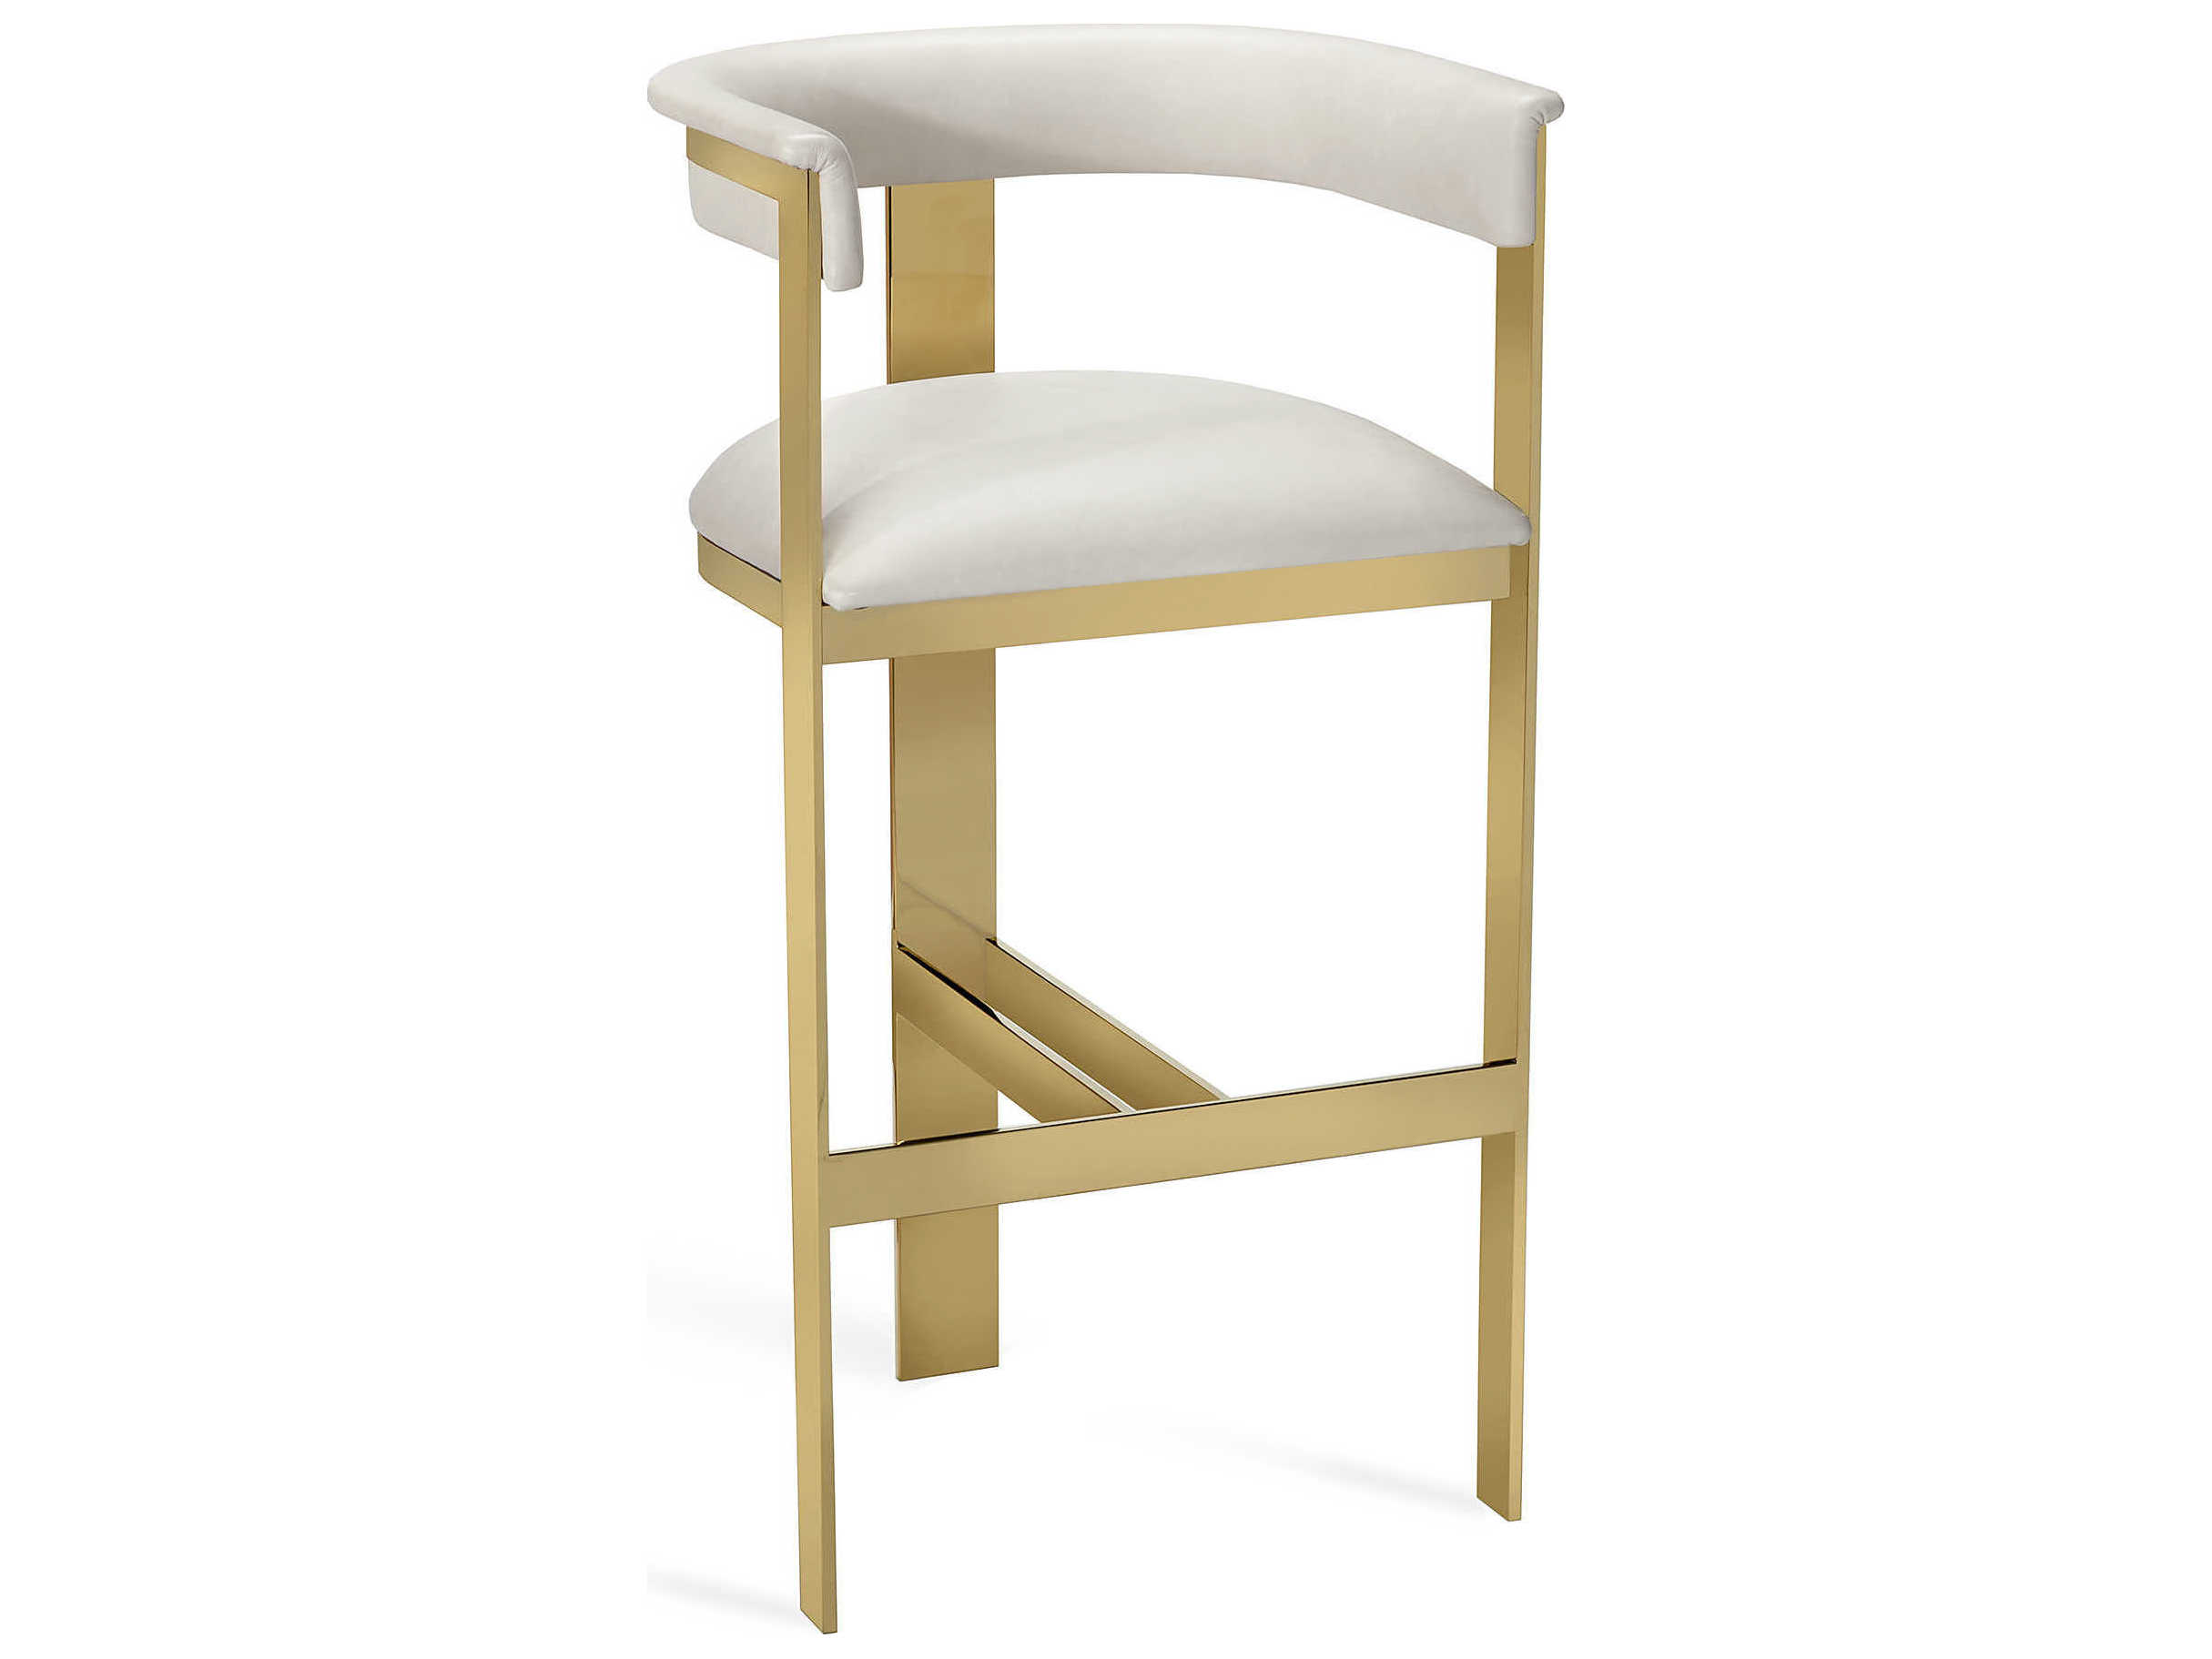 Admirable Interlude Home Darcy Cream Leather Bar Stool Pdpeps Interior Chair Design Pdpepsorg